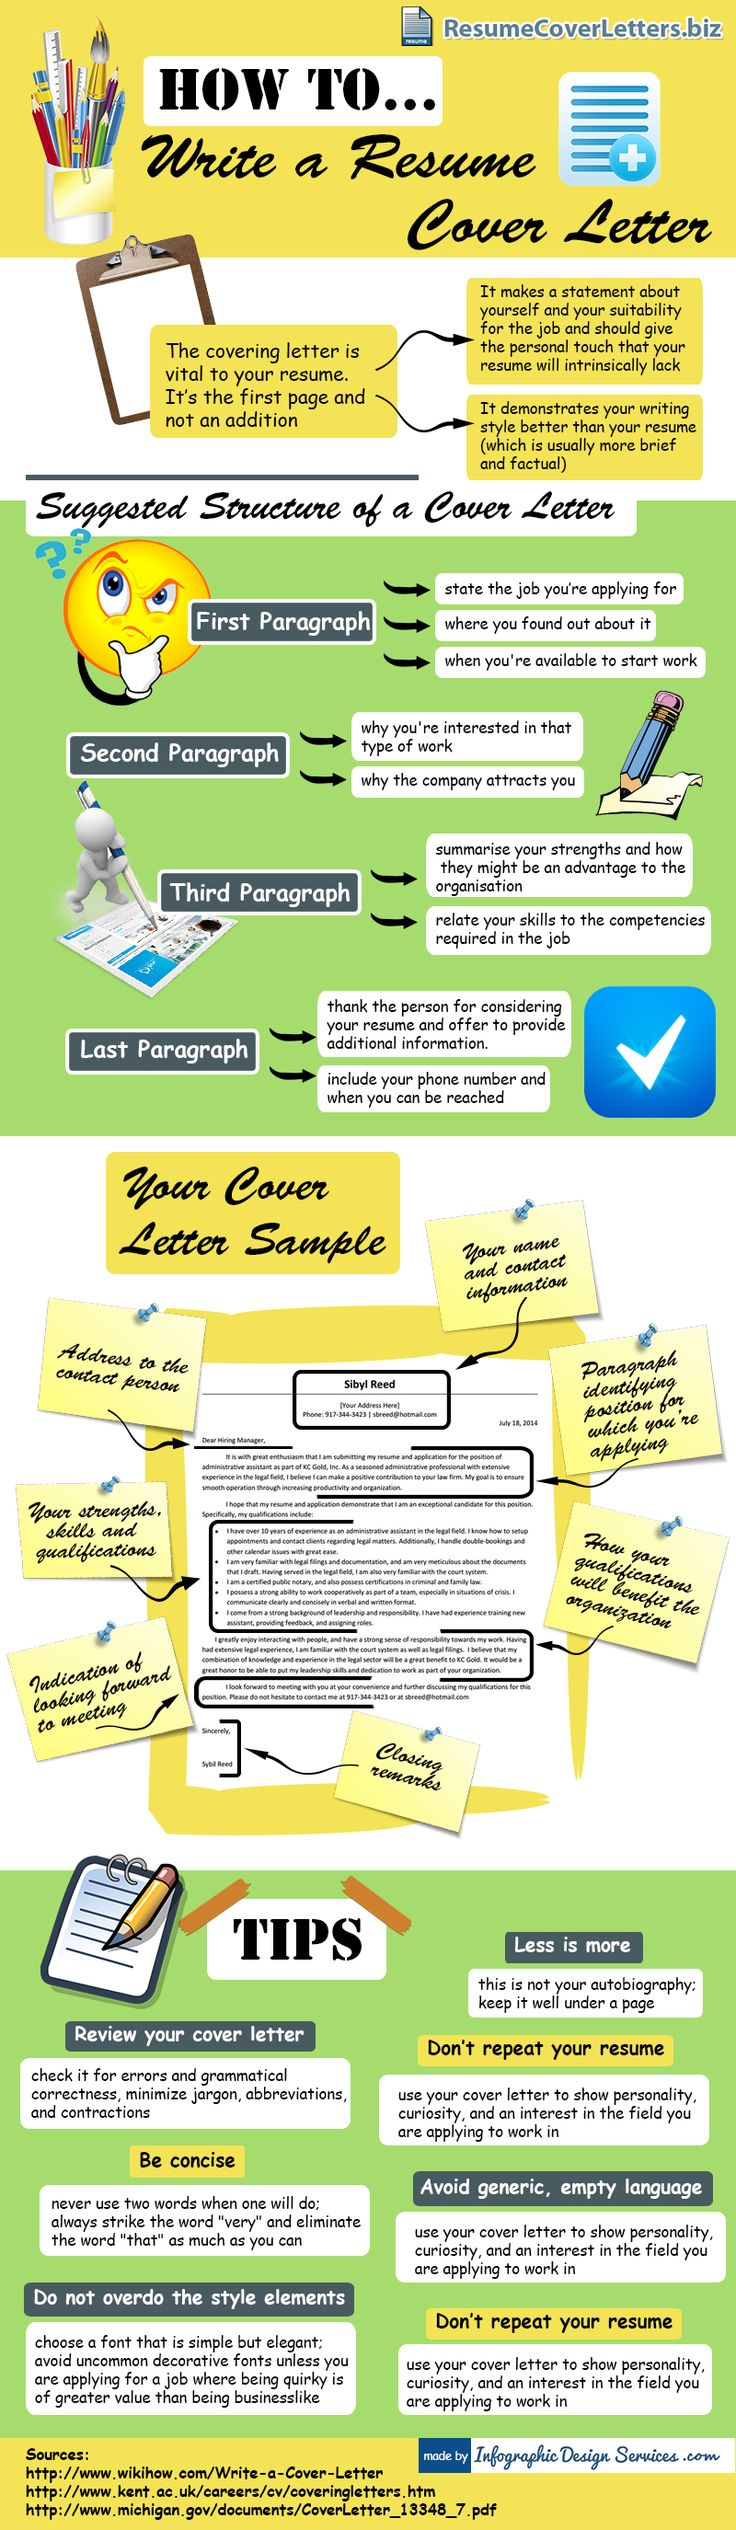 17 best ideas about resume cover letters on pinterest